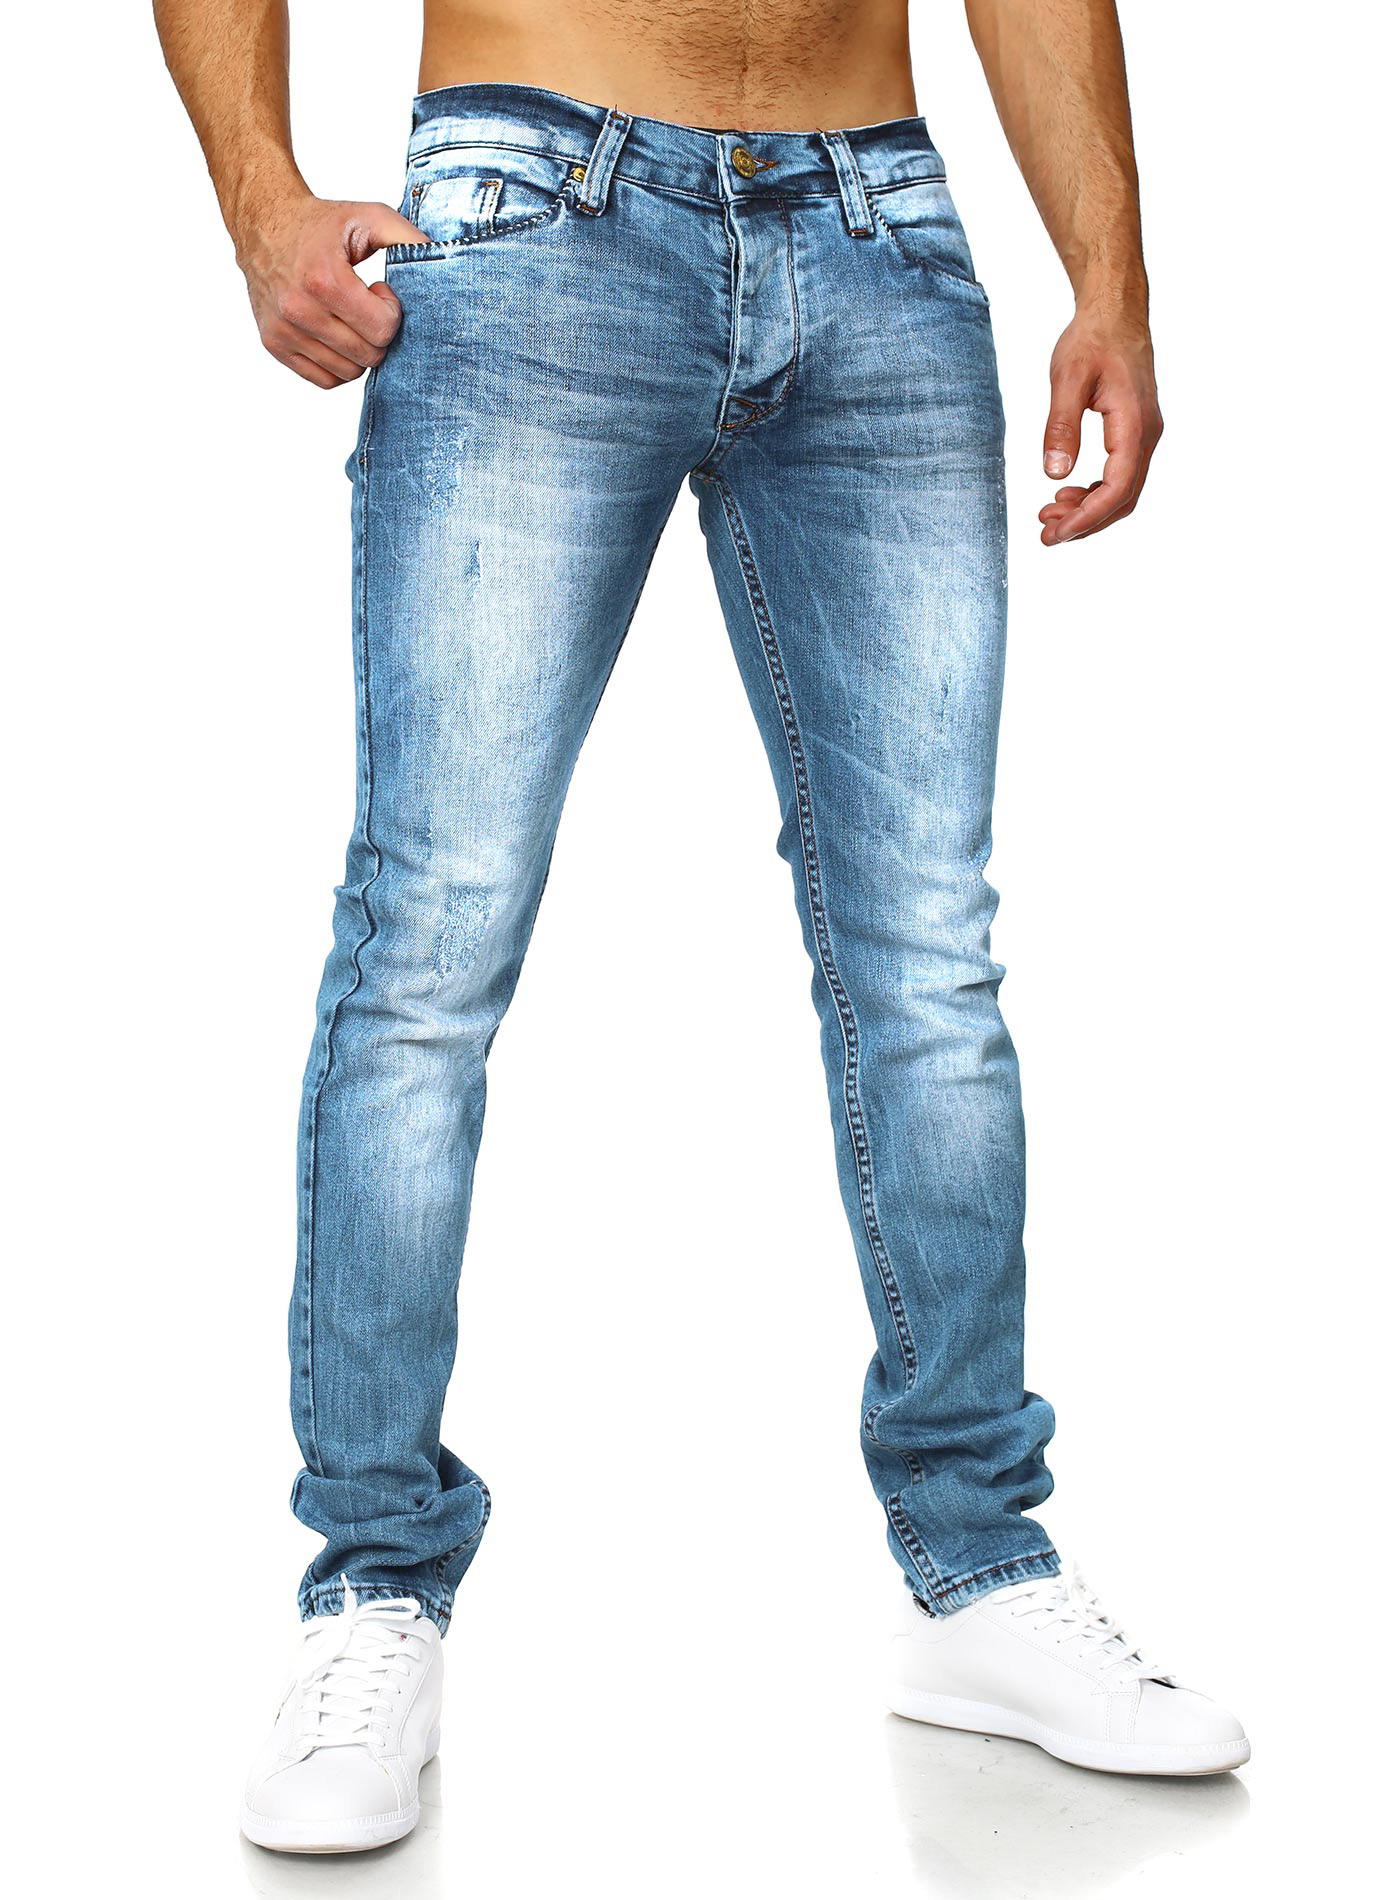 Wide range of jeans in dry, black and pre-washed, rigid, selvage and stretch denim in % organic cotton. Buy denim jeans at the Nudie Jeans Online Shop.